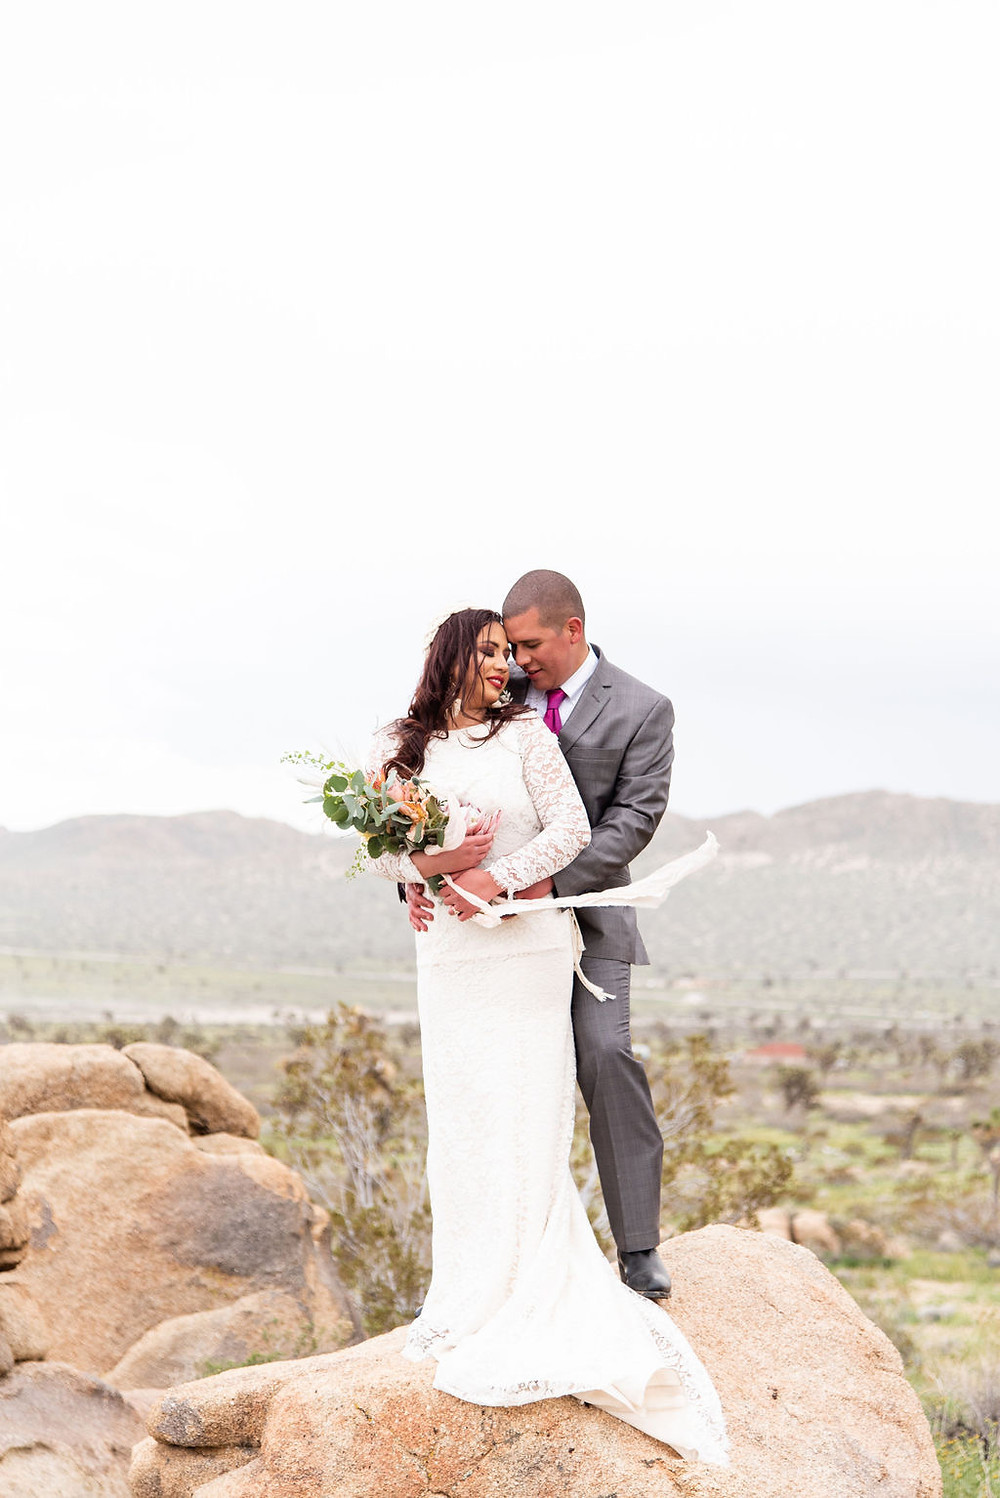 Bride and groom stand together on the Joshua Tree Rocks.